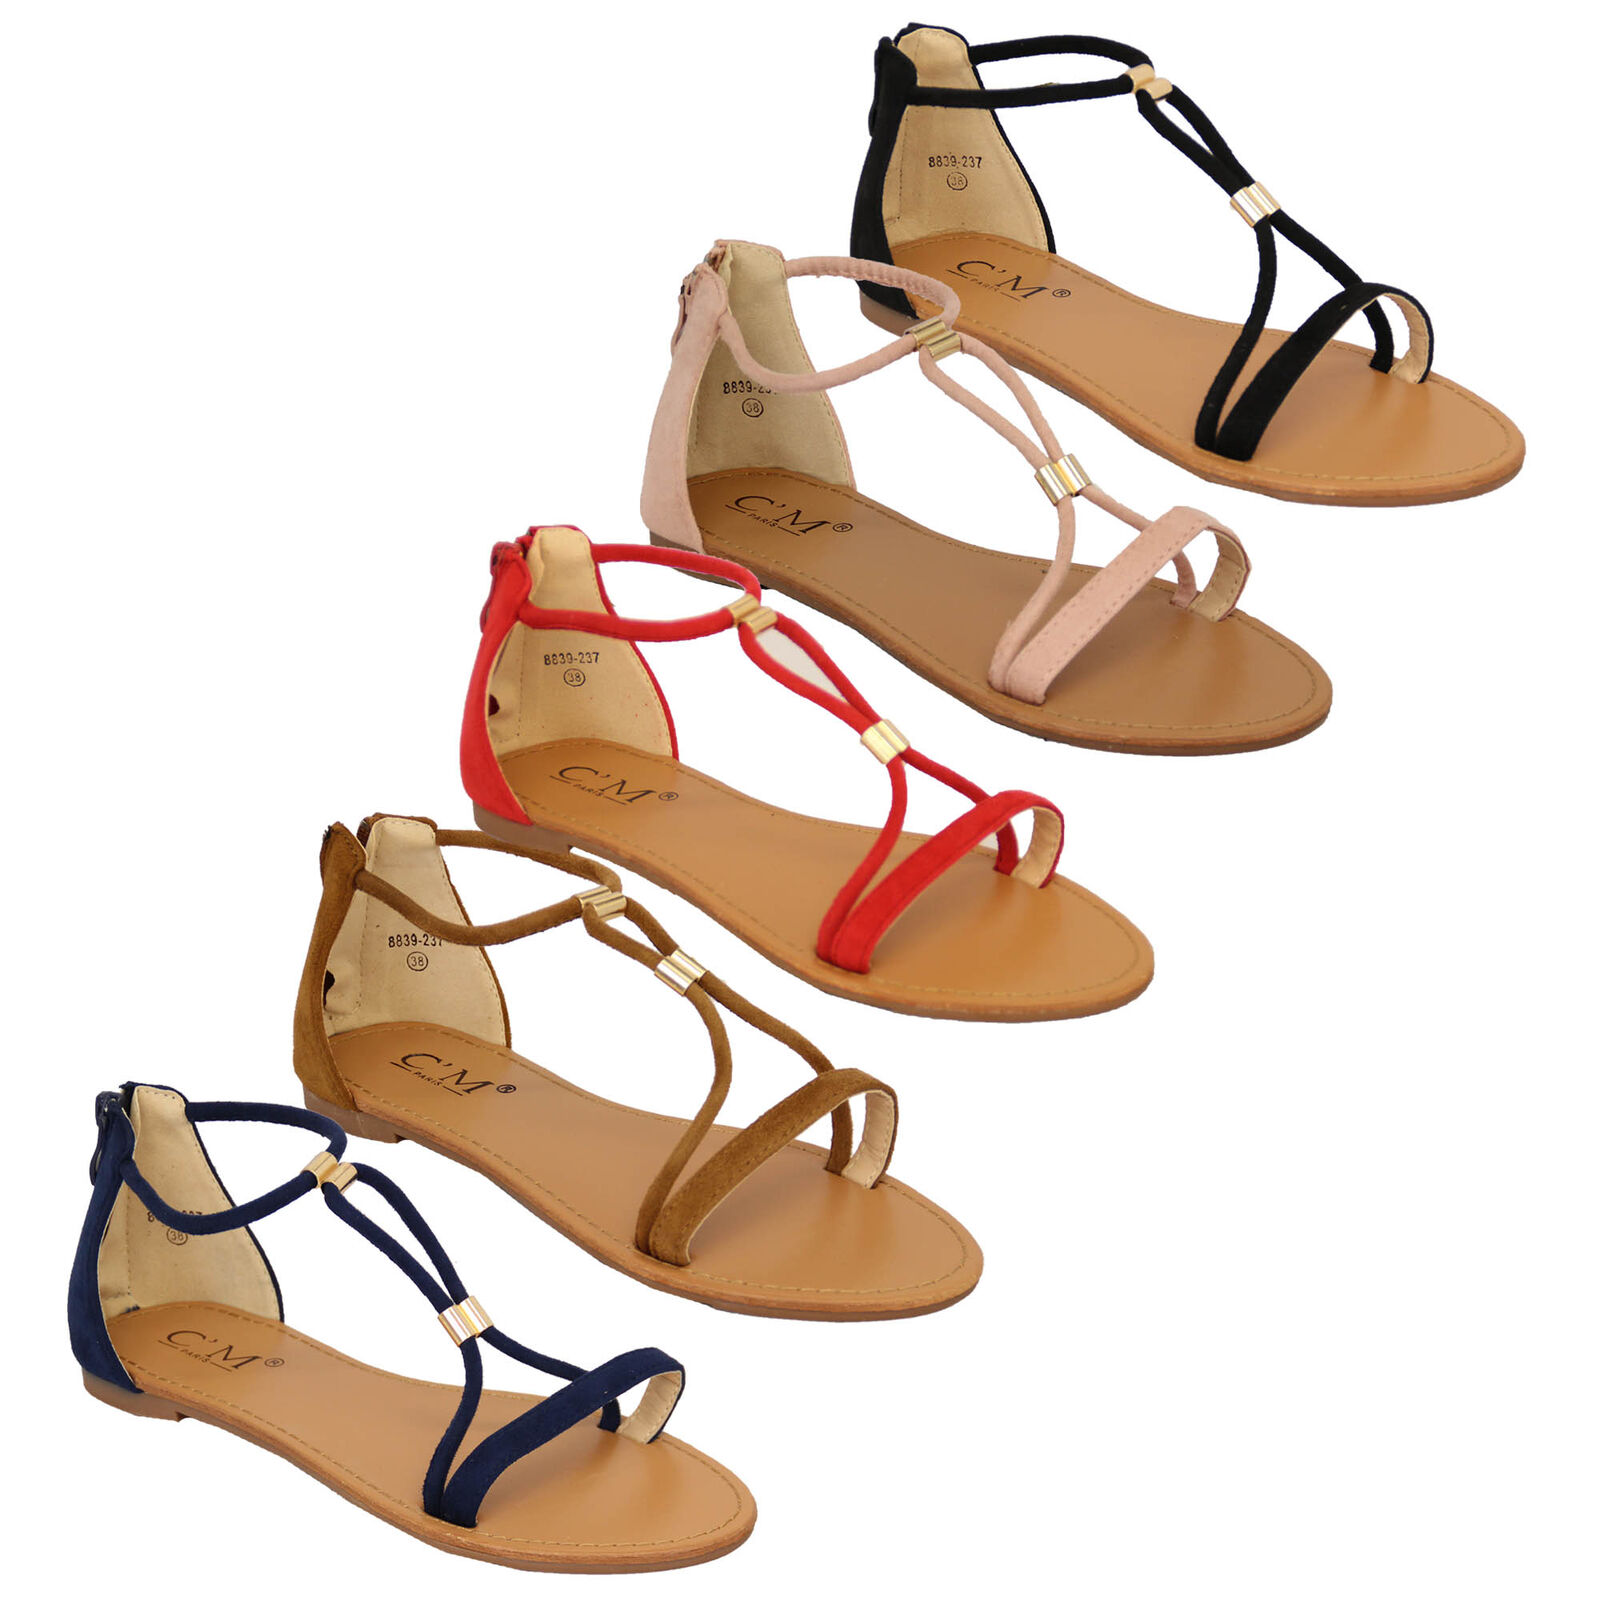 Ladies Flat Sandals Shoes Womens Suede Look Open Toe Gladiator Shoes Sandals Fashion Summer ebf51f